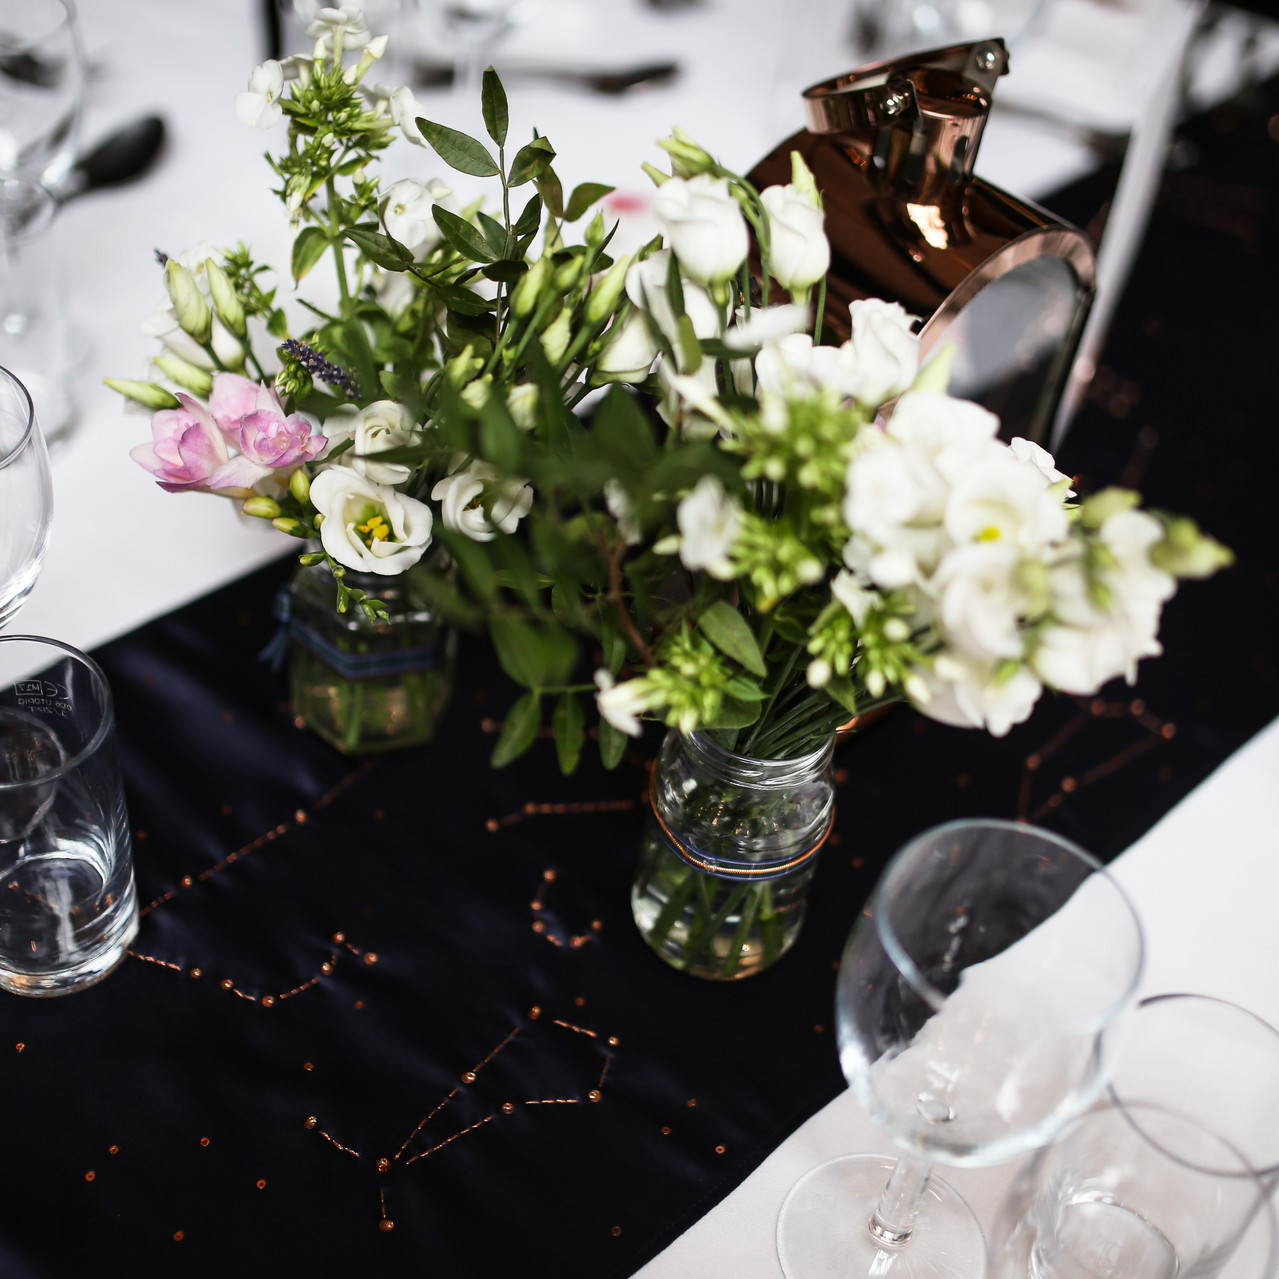 Table runner with star constellation